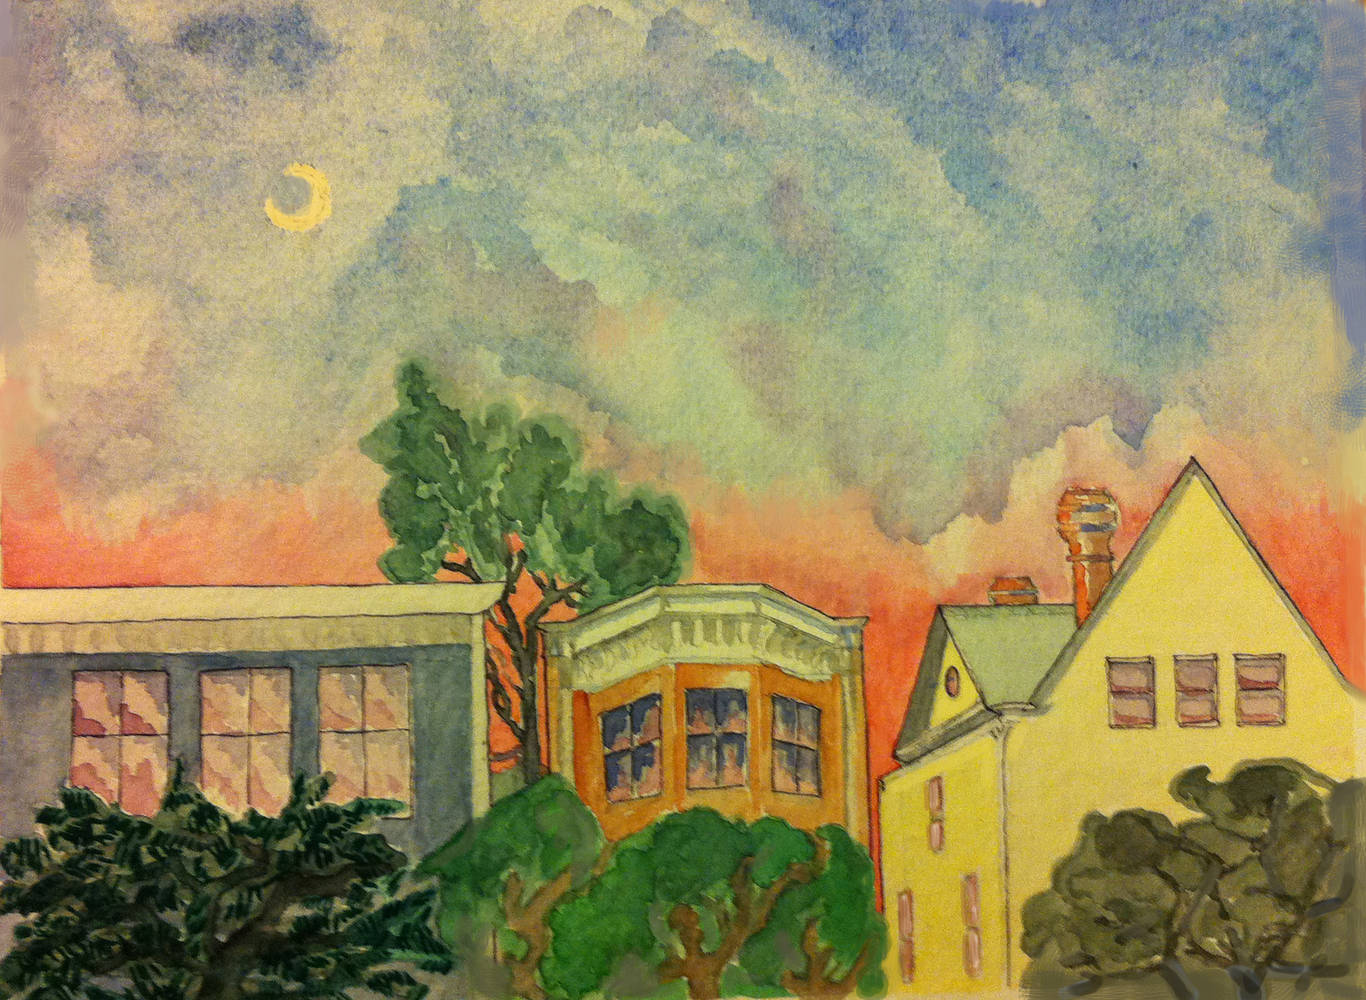 Watercolor Sunset with Copper Chimneys by Anastasia O'melveny